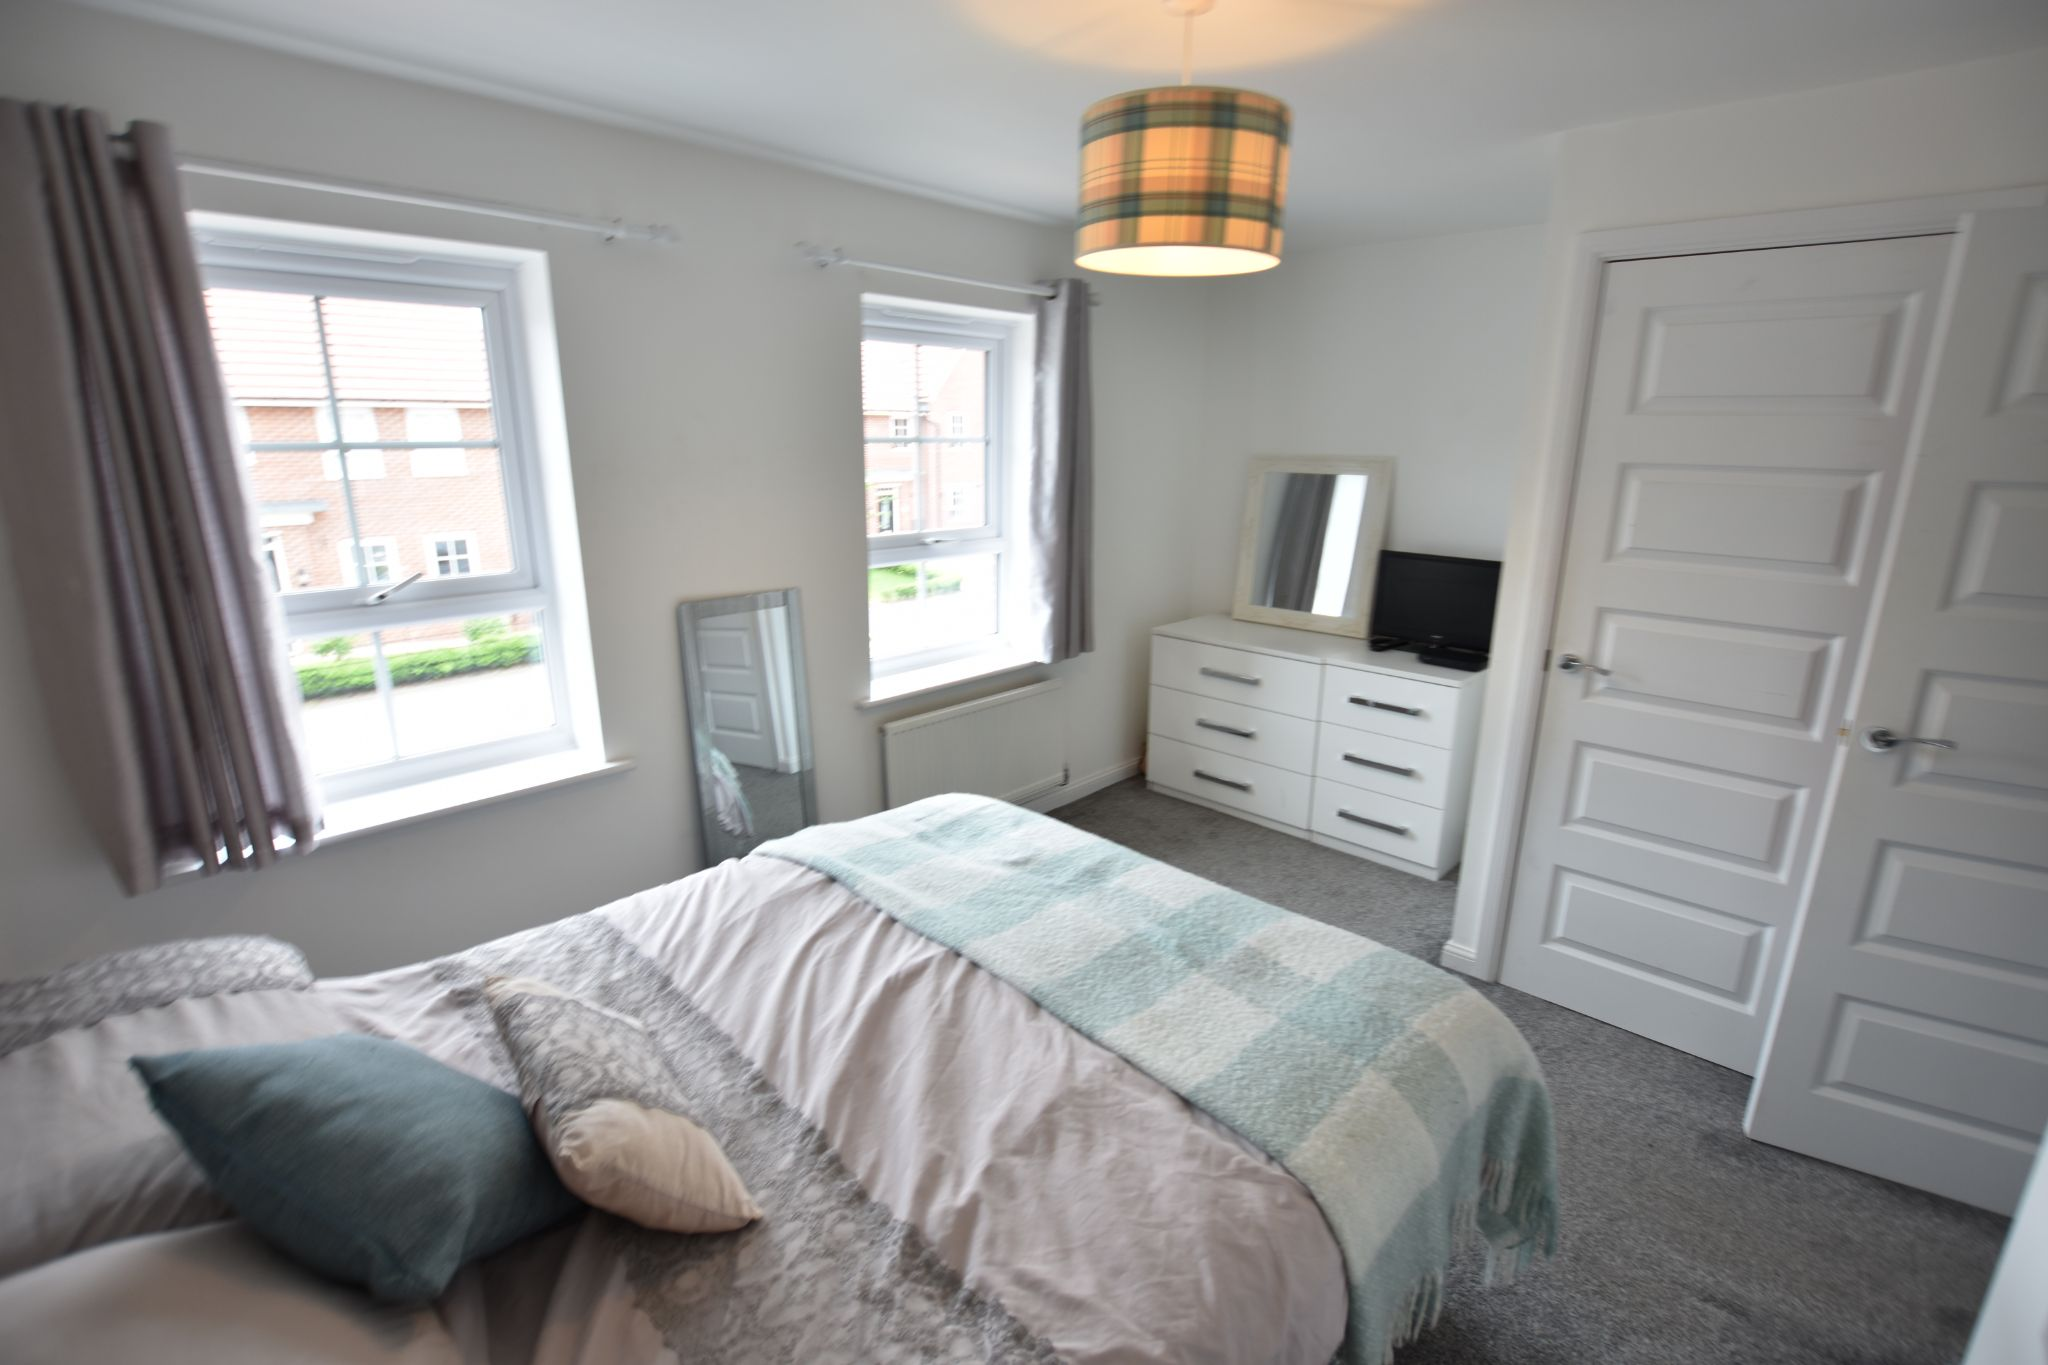 3 bedroom mid terraced house For Sale in Preston - Bedroom 1